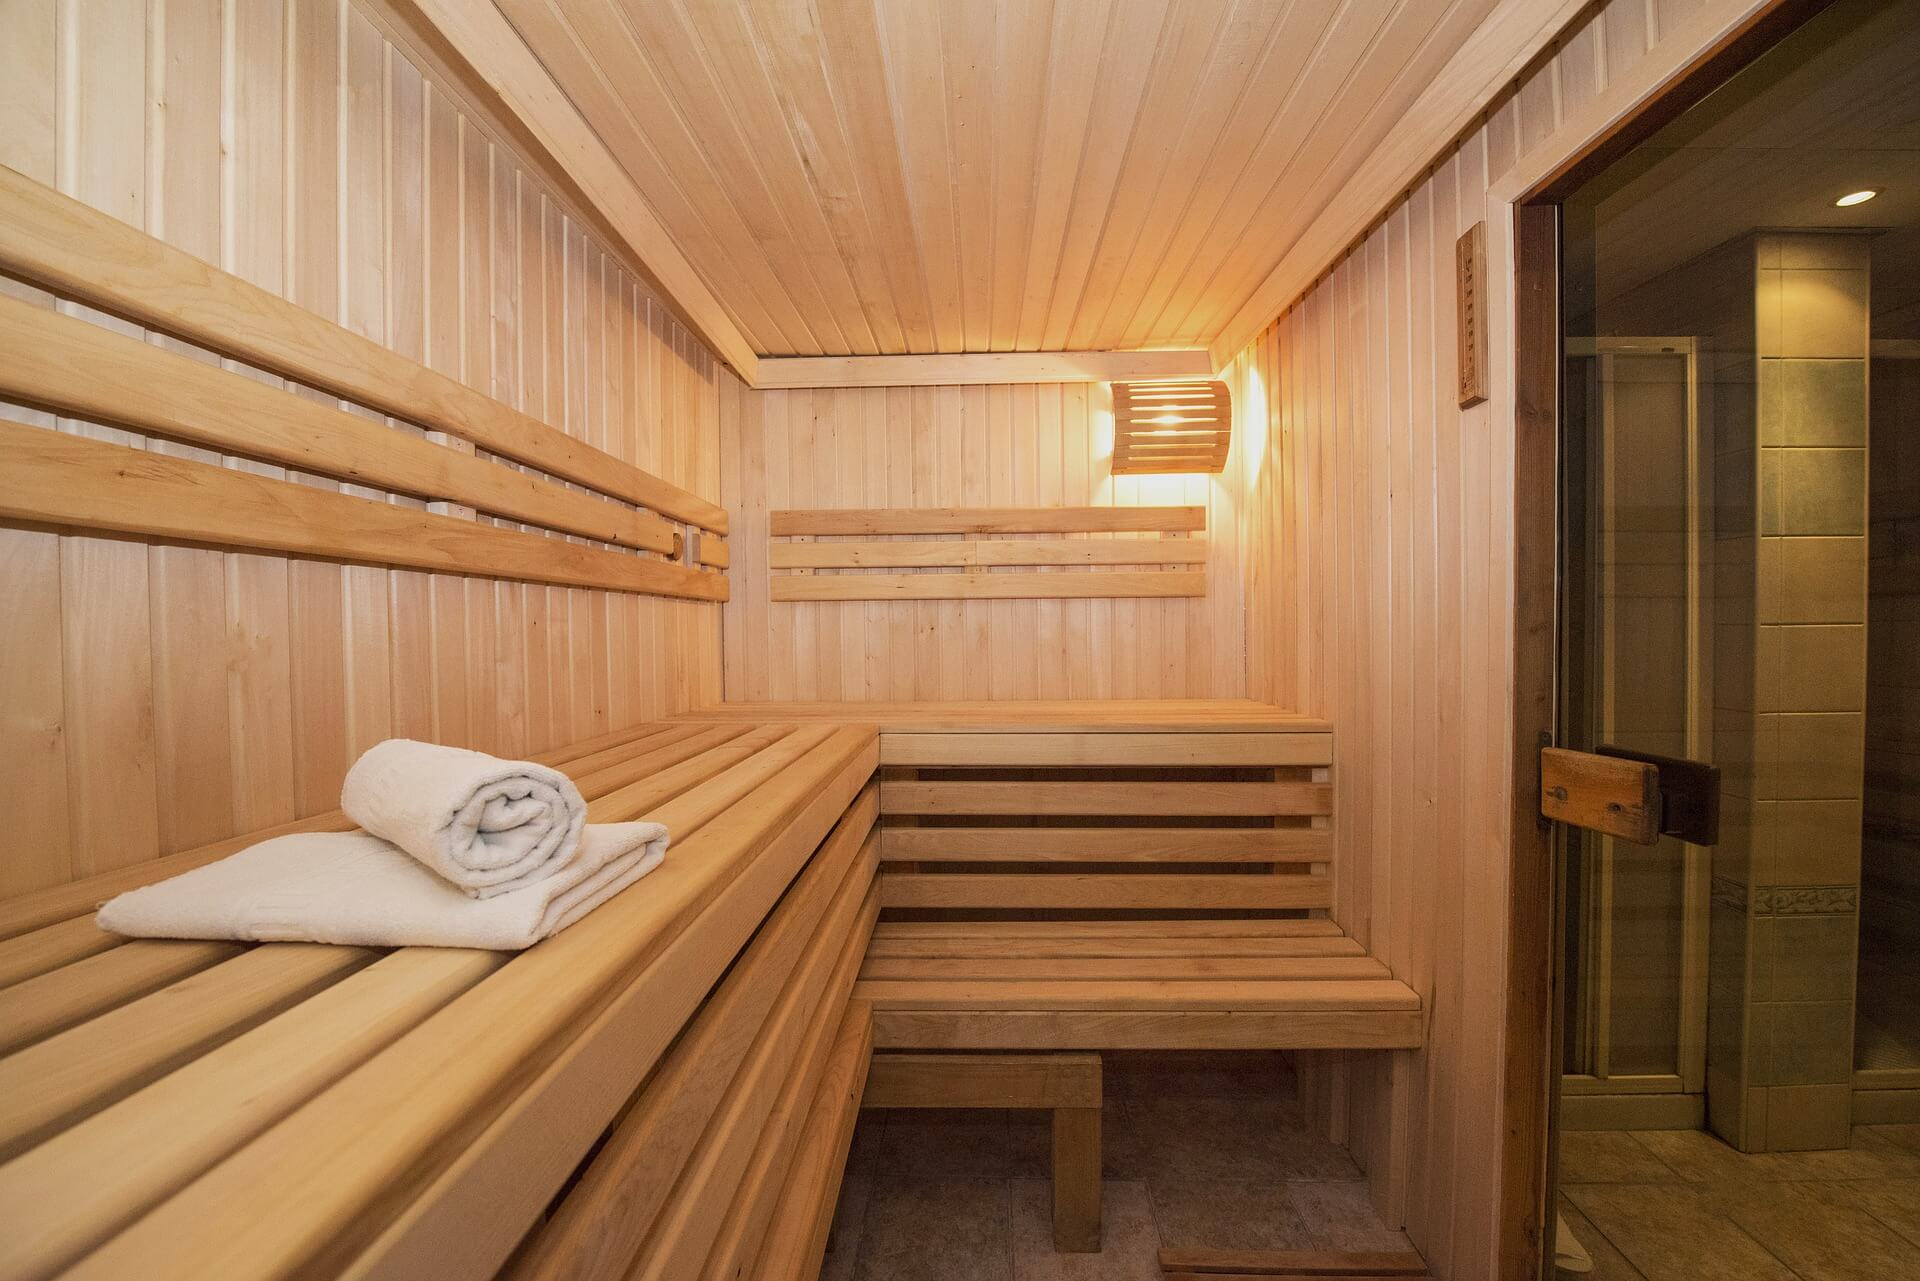 Finnish Sauna Etiquette - 8 Things Every Tourist Should